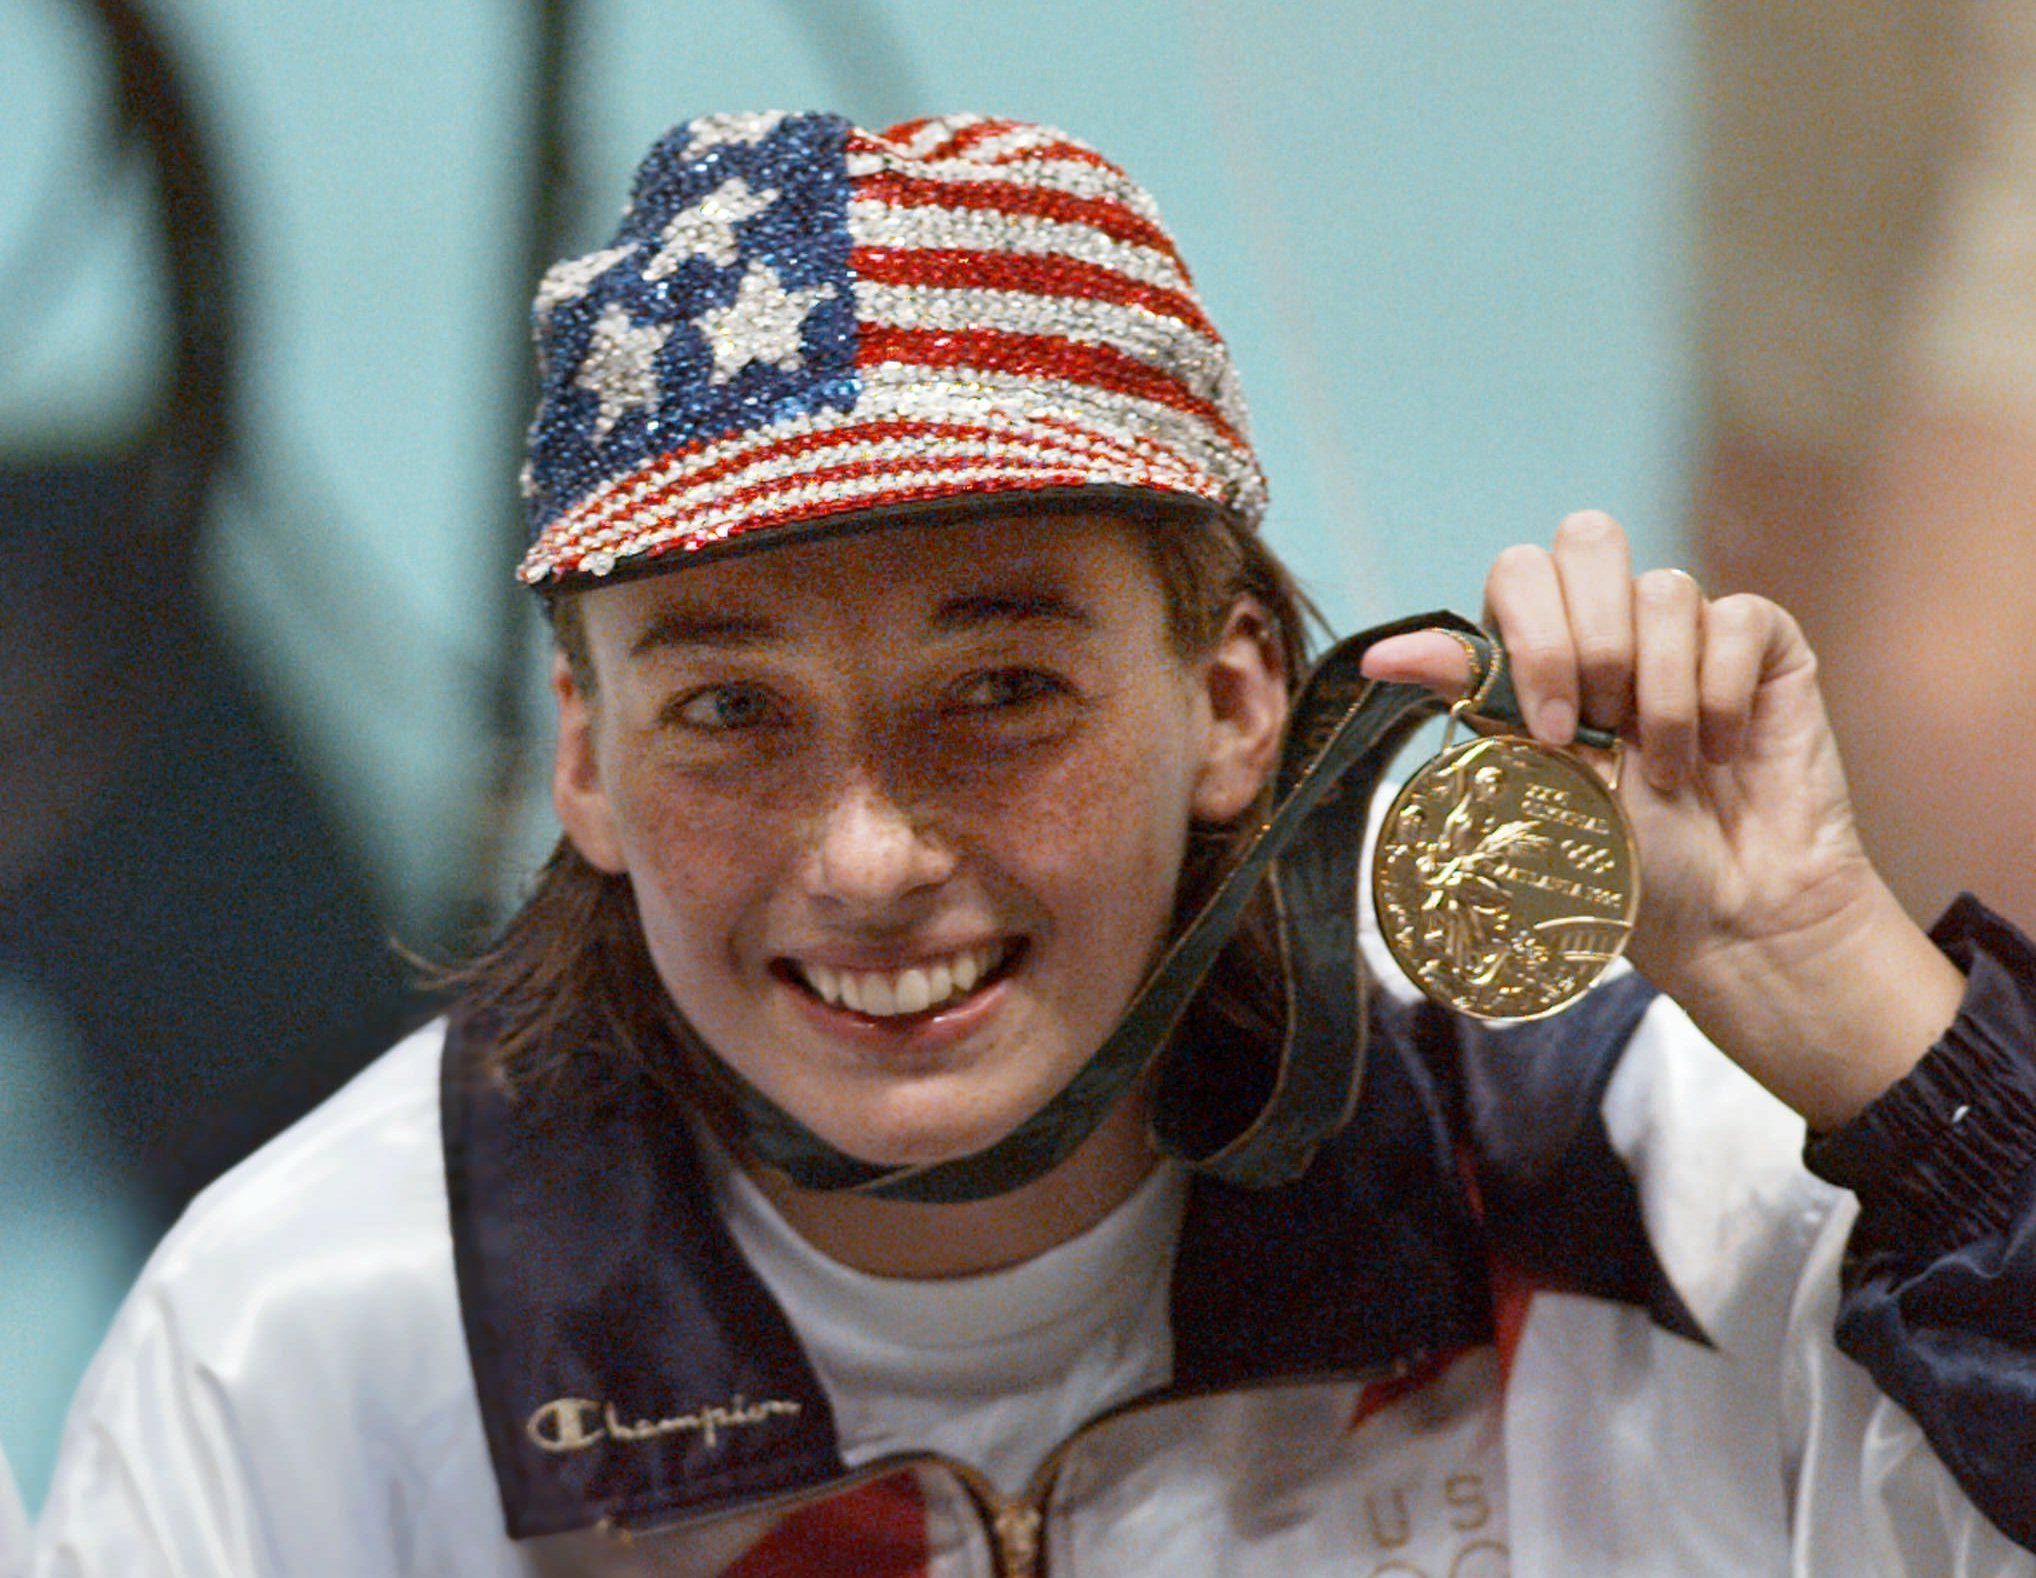 Discussion on this topic: Taya Parker, amy-van-dyken-6-olympic-medals/